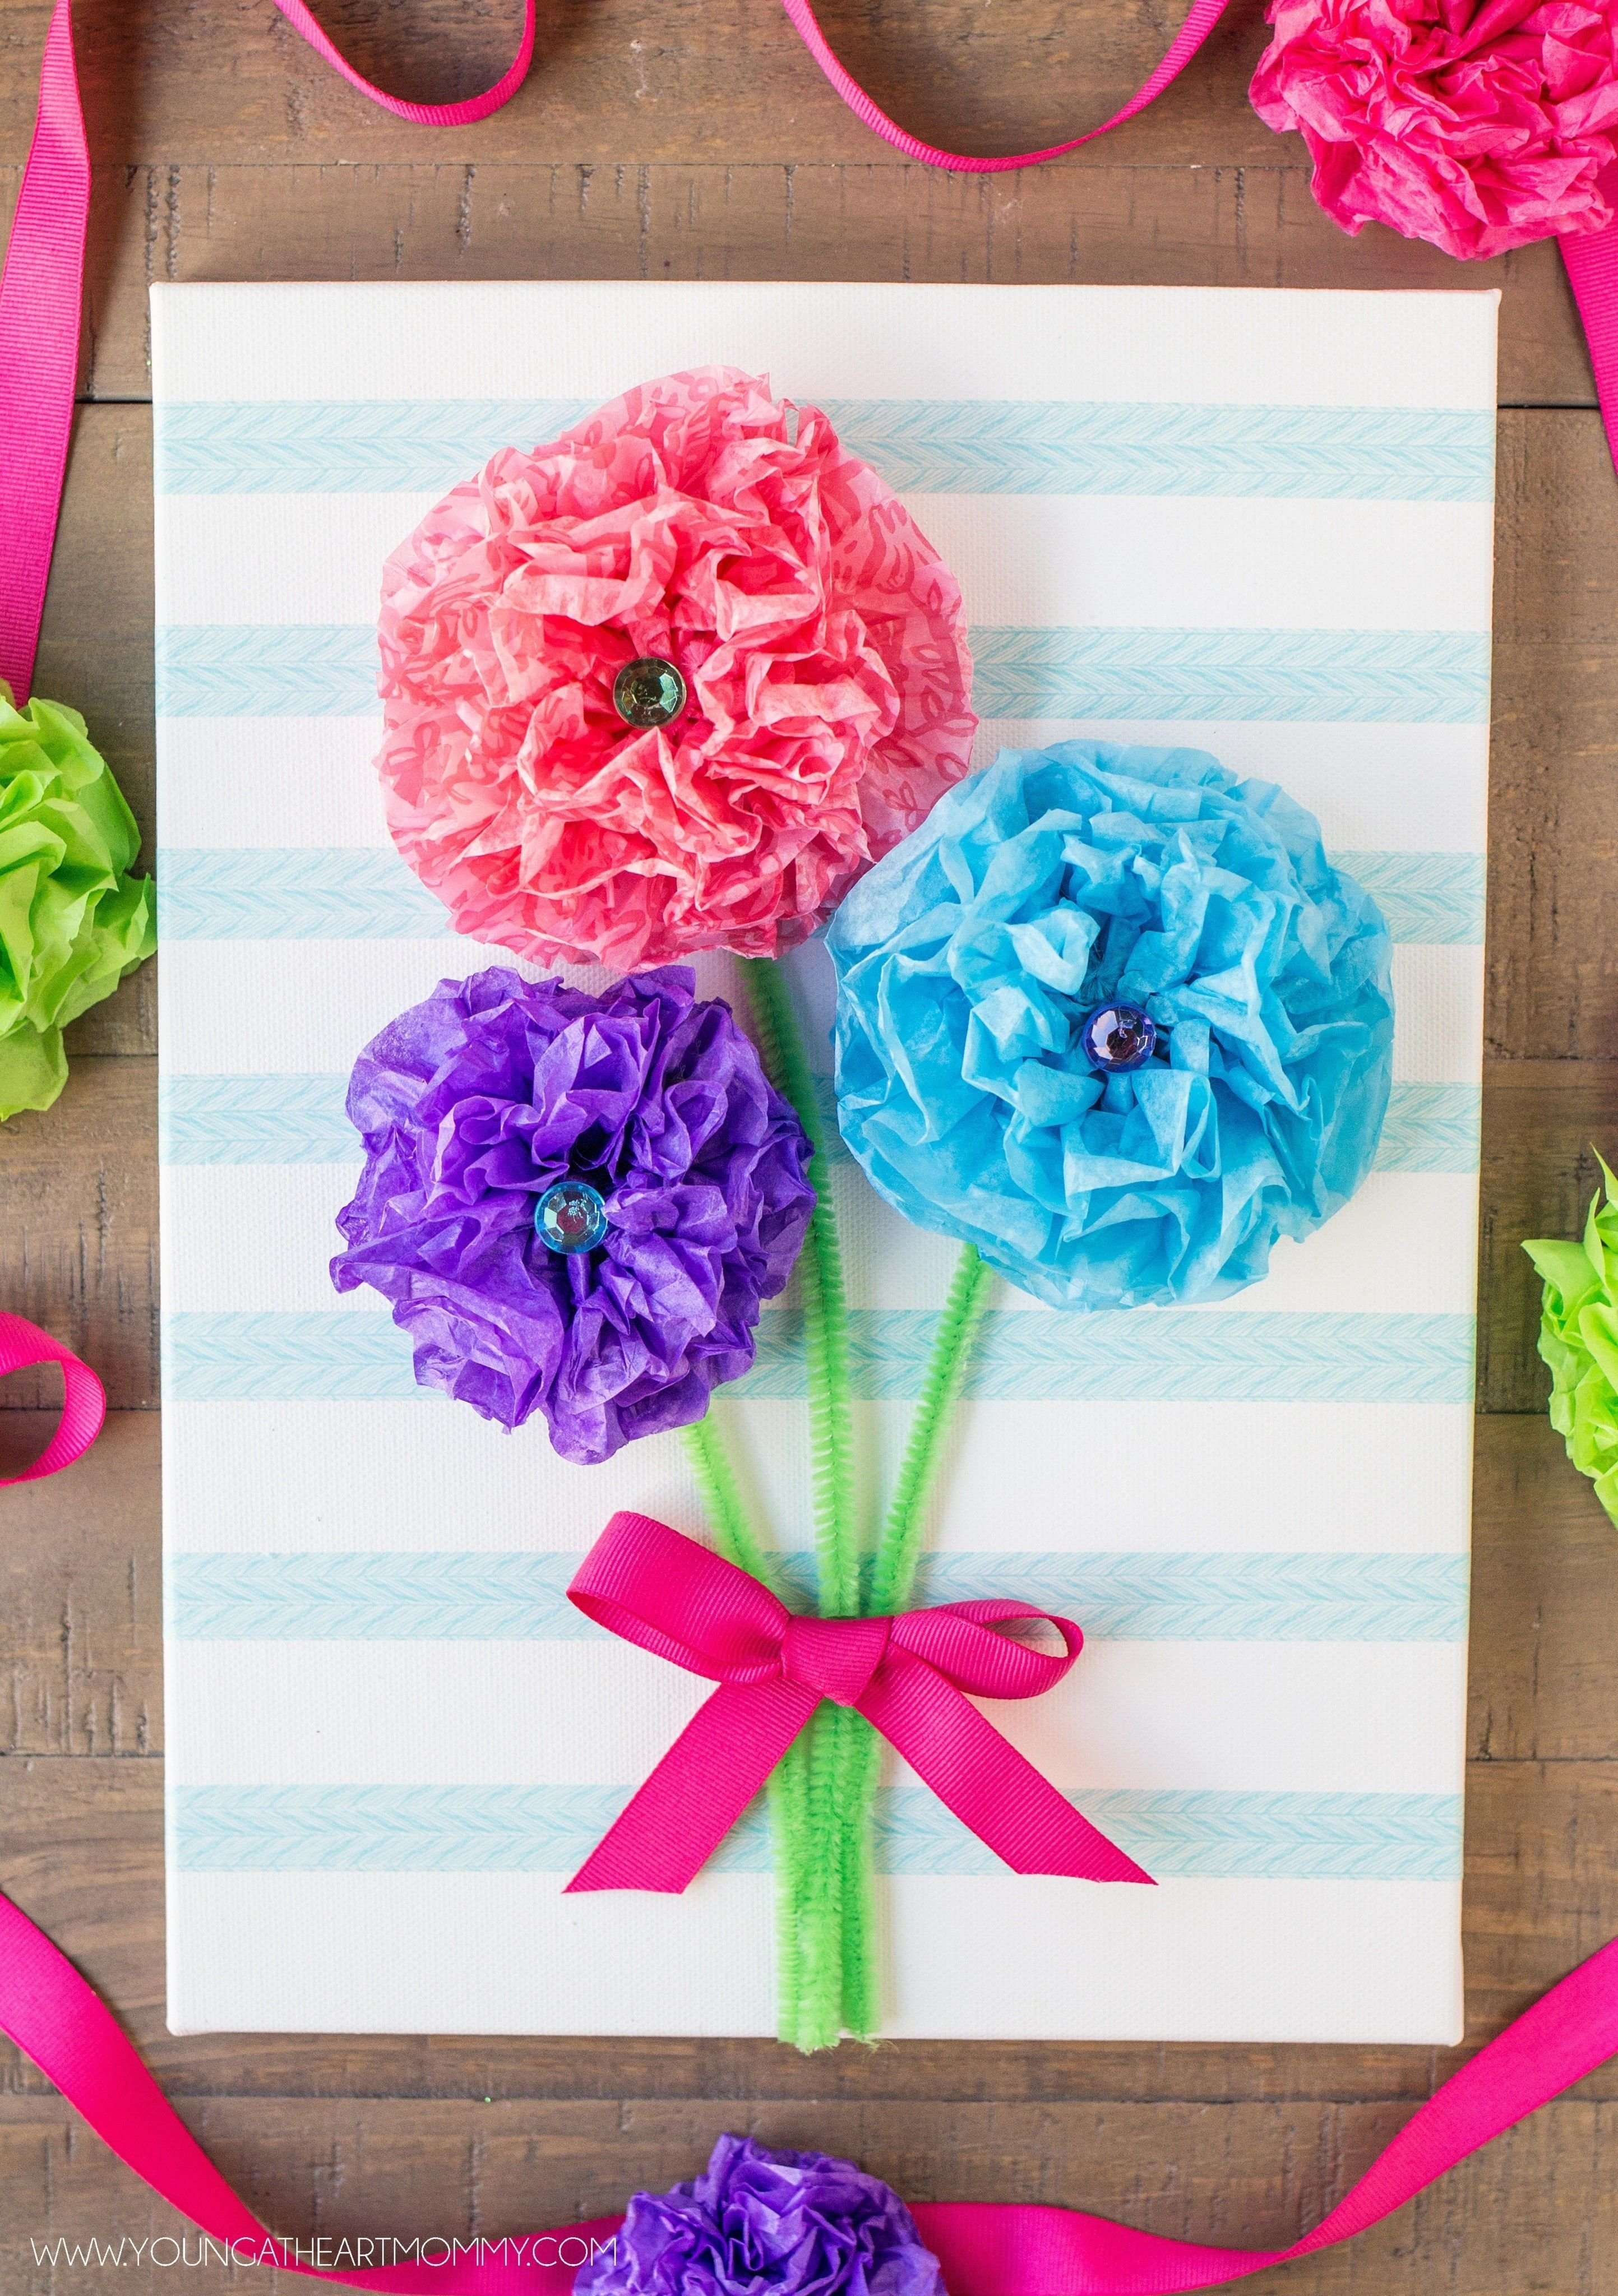 Tissue paper flower bouquet canvas paper flowers 2 pinterest tissue paper flower bouquet canvas free tutorial with pictures on how to make wall decor in under 30 minutes izmirmasajfo